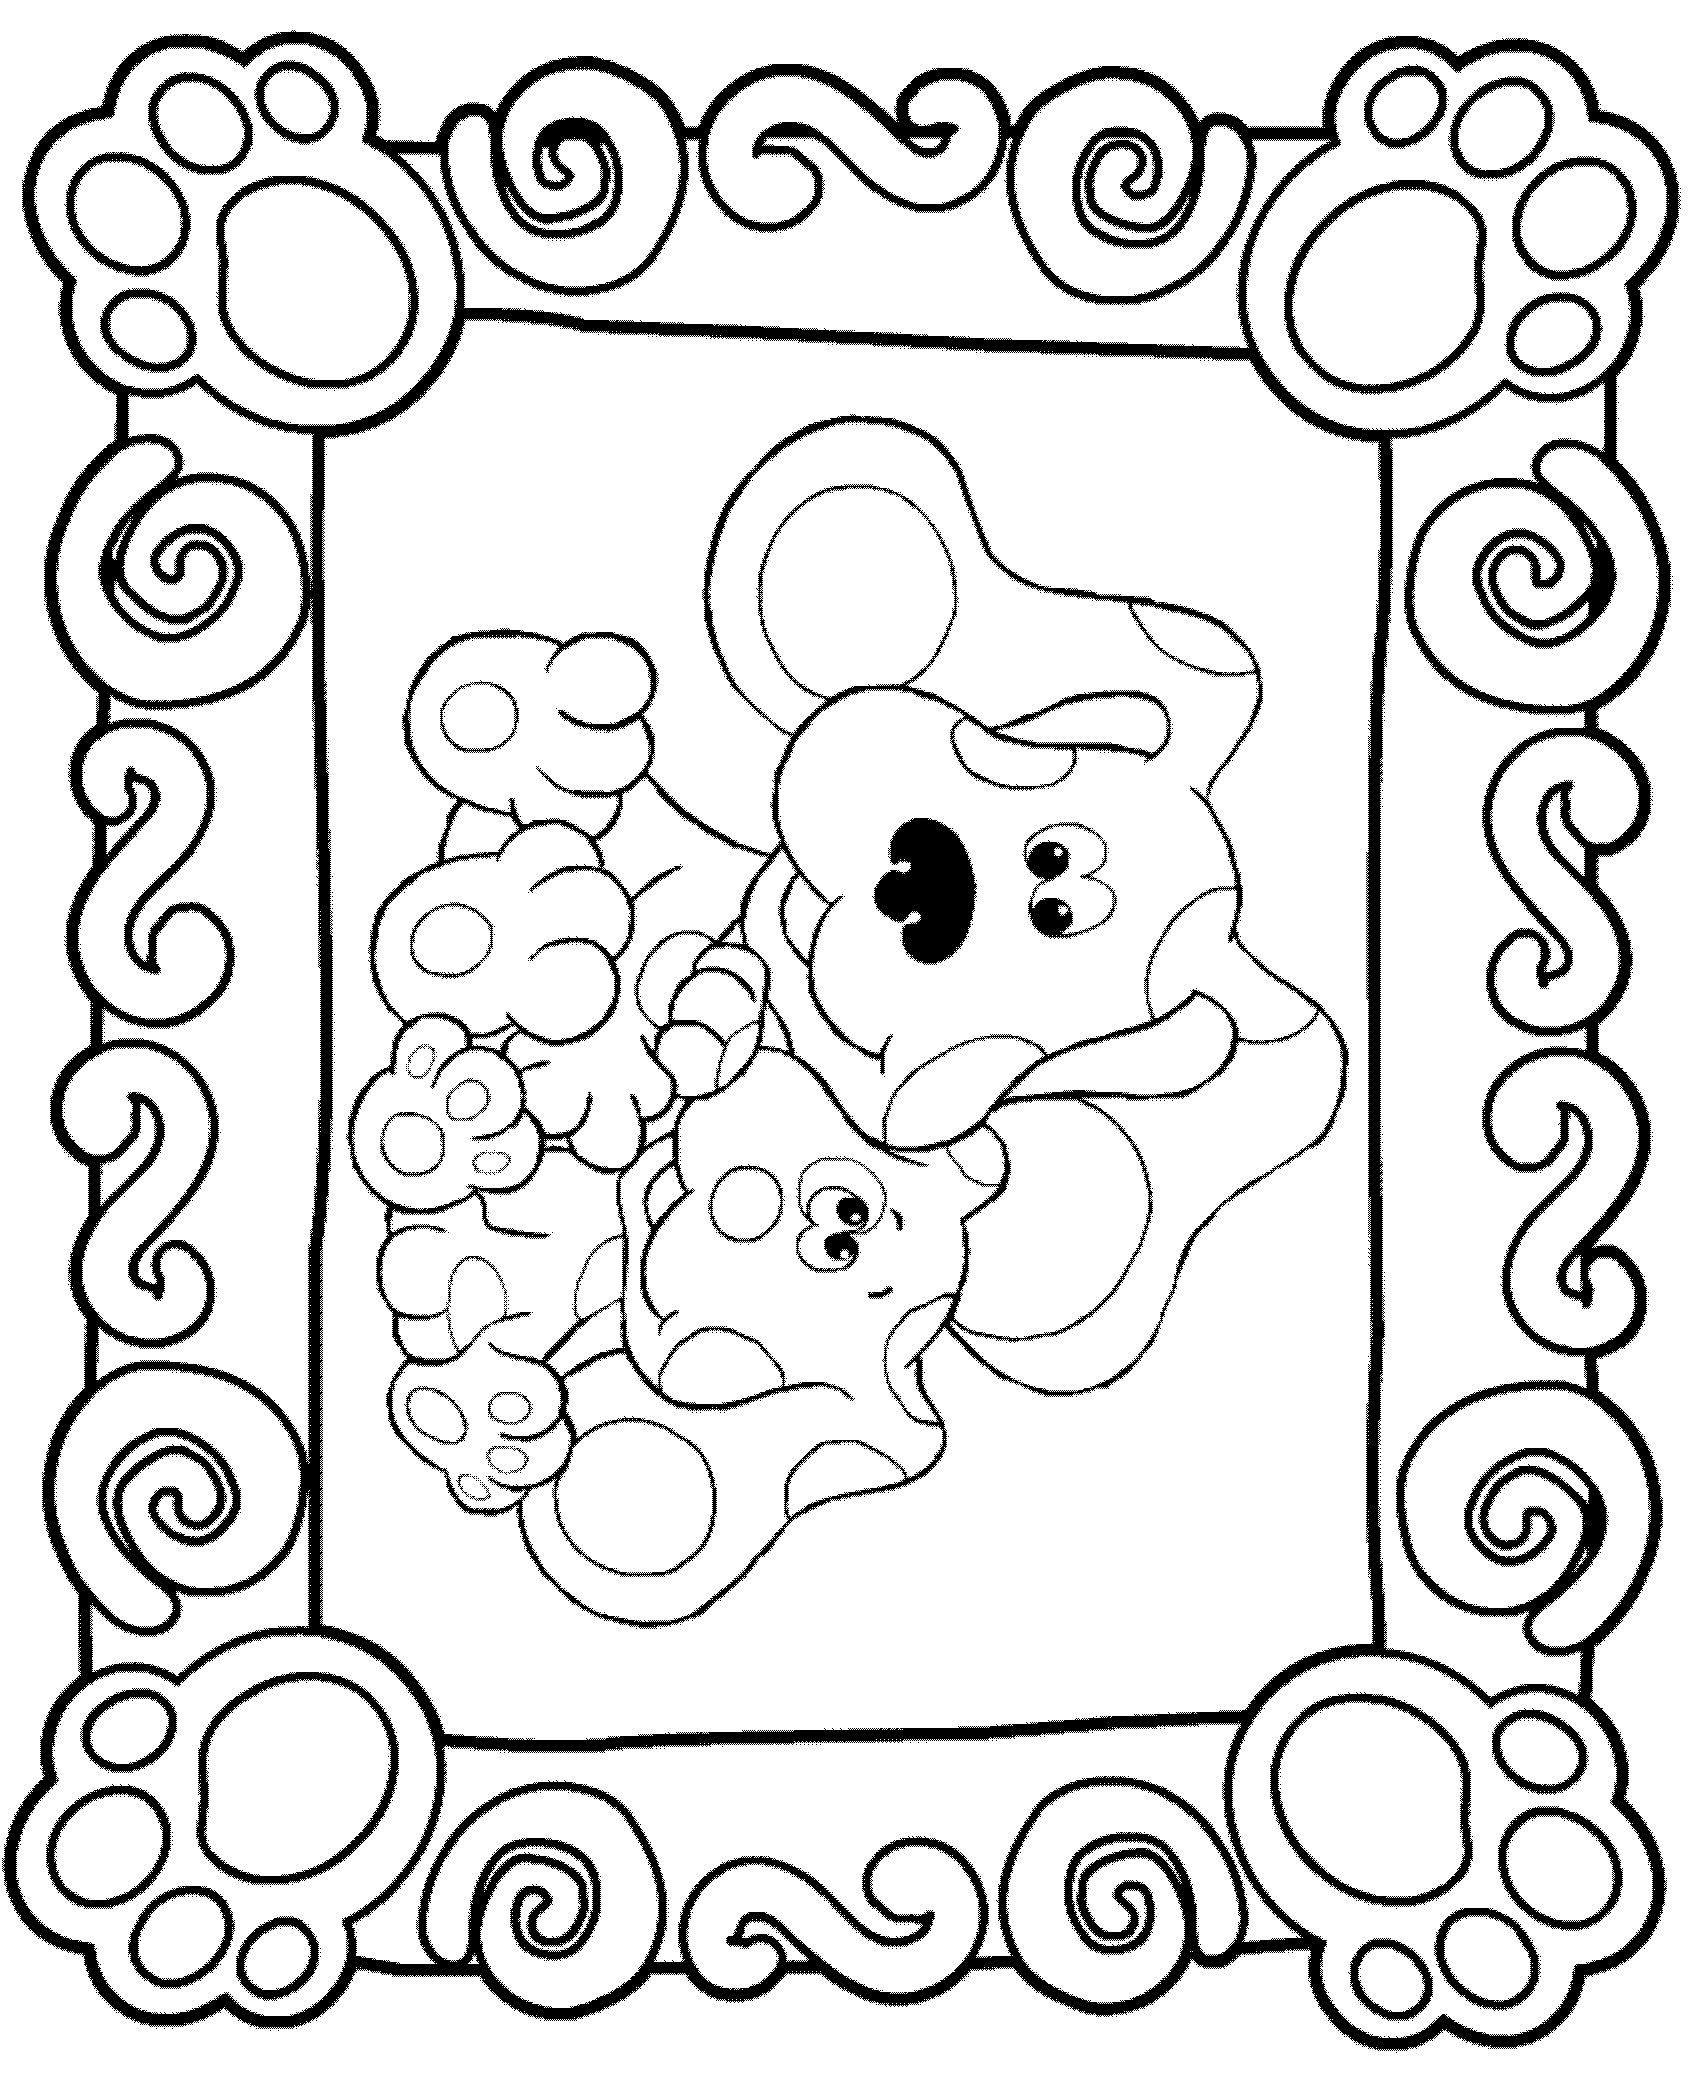 15 blues clues coloring pages